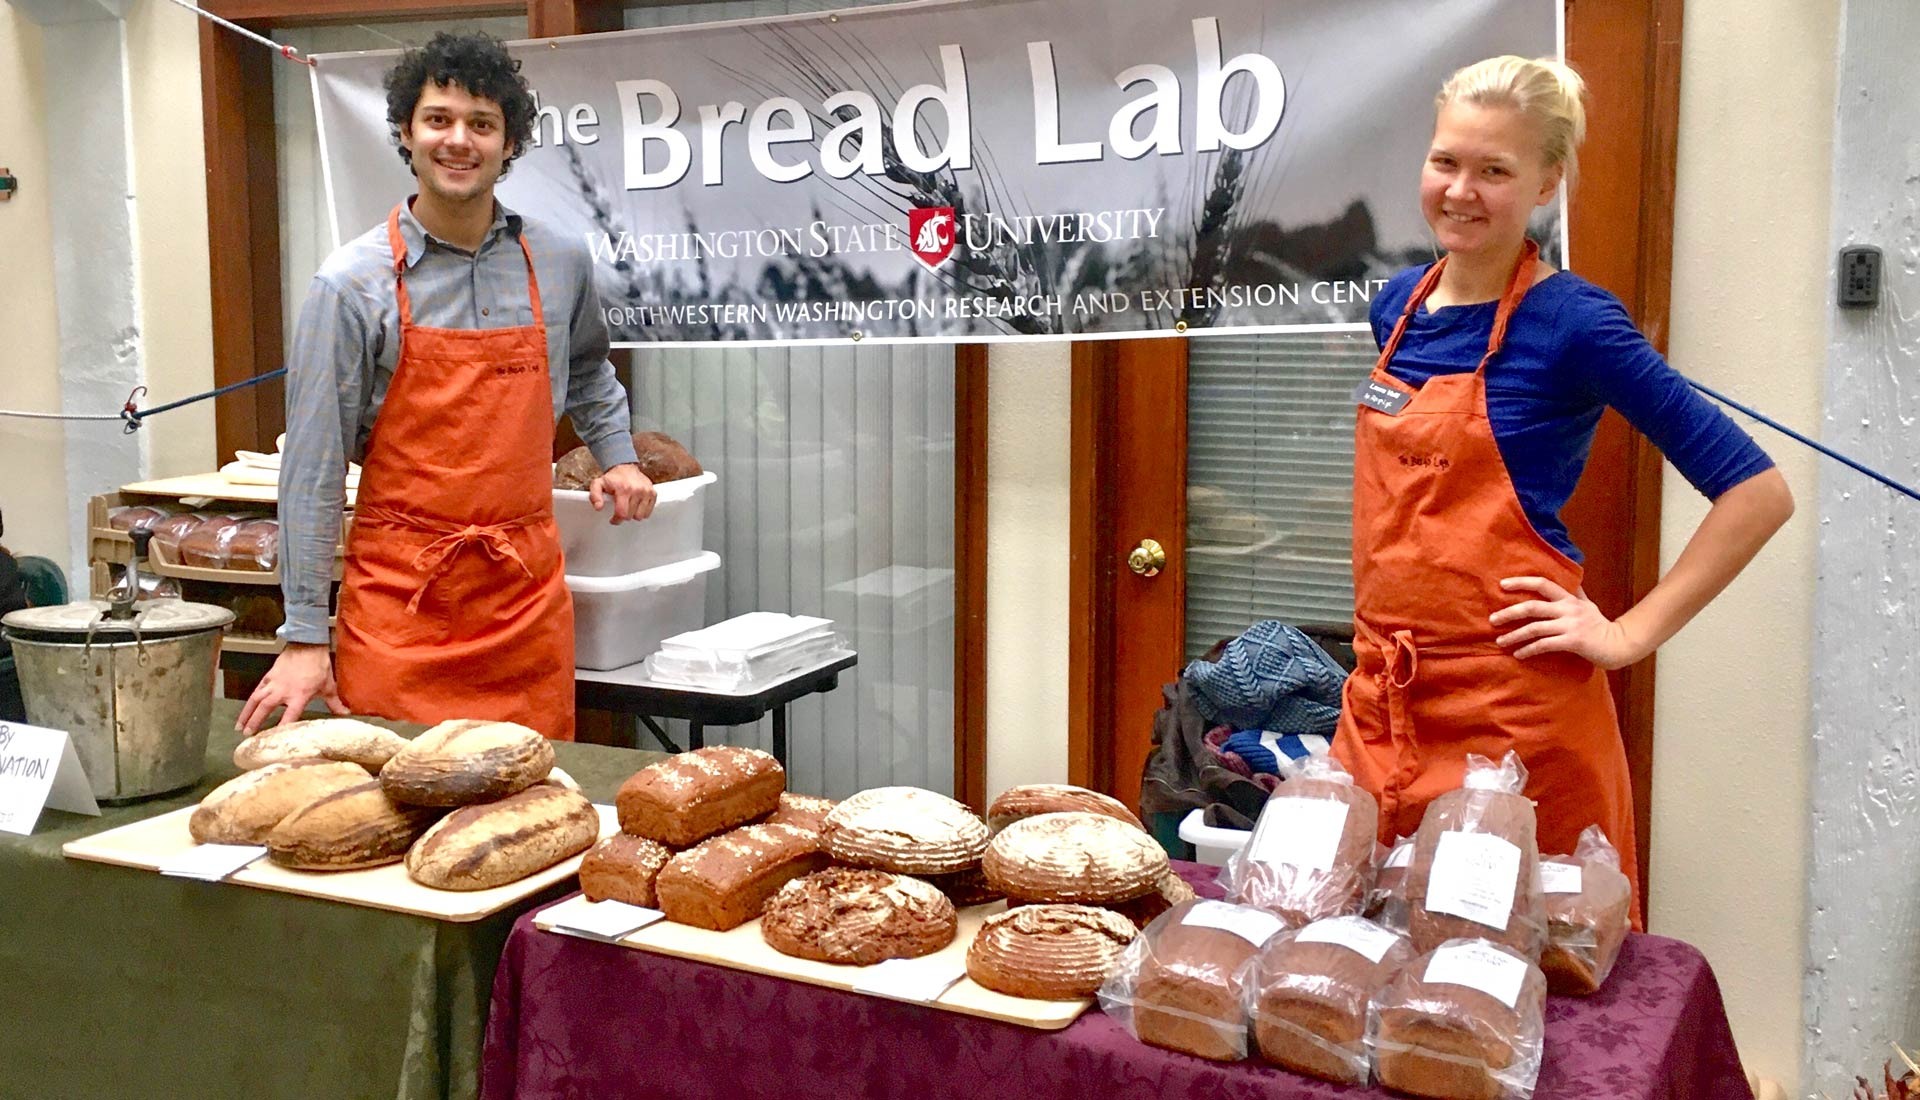 Young man and woman in orange aprons stand at table full of bread.